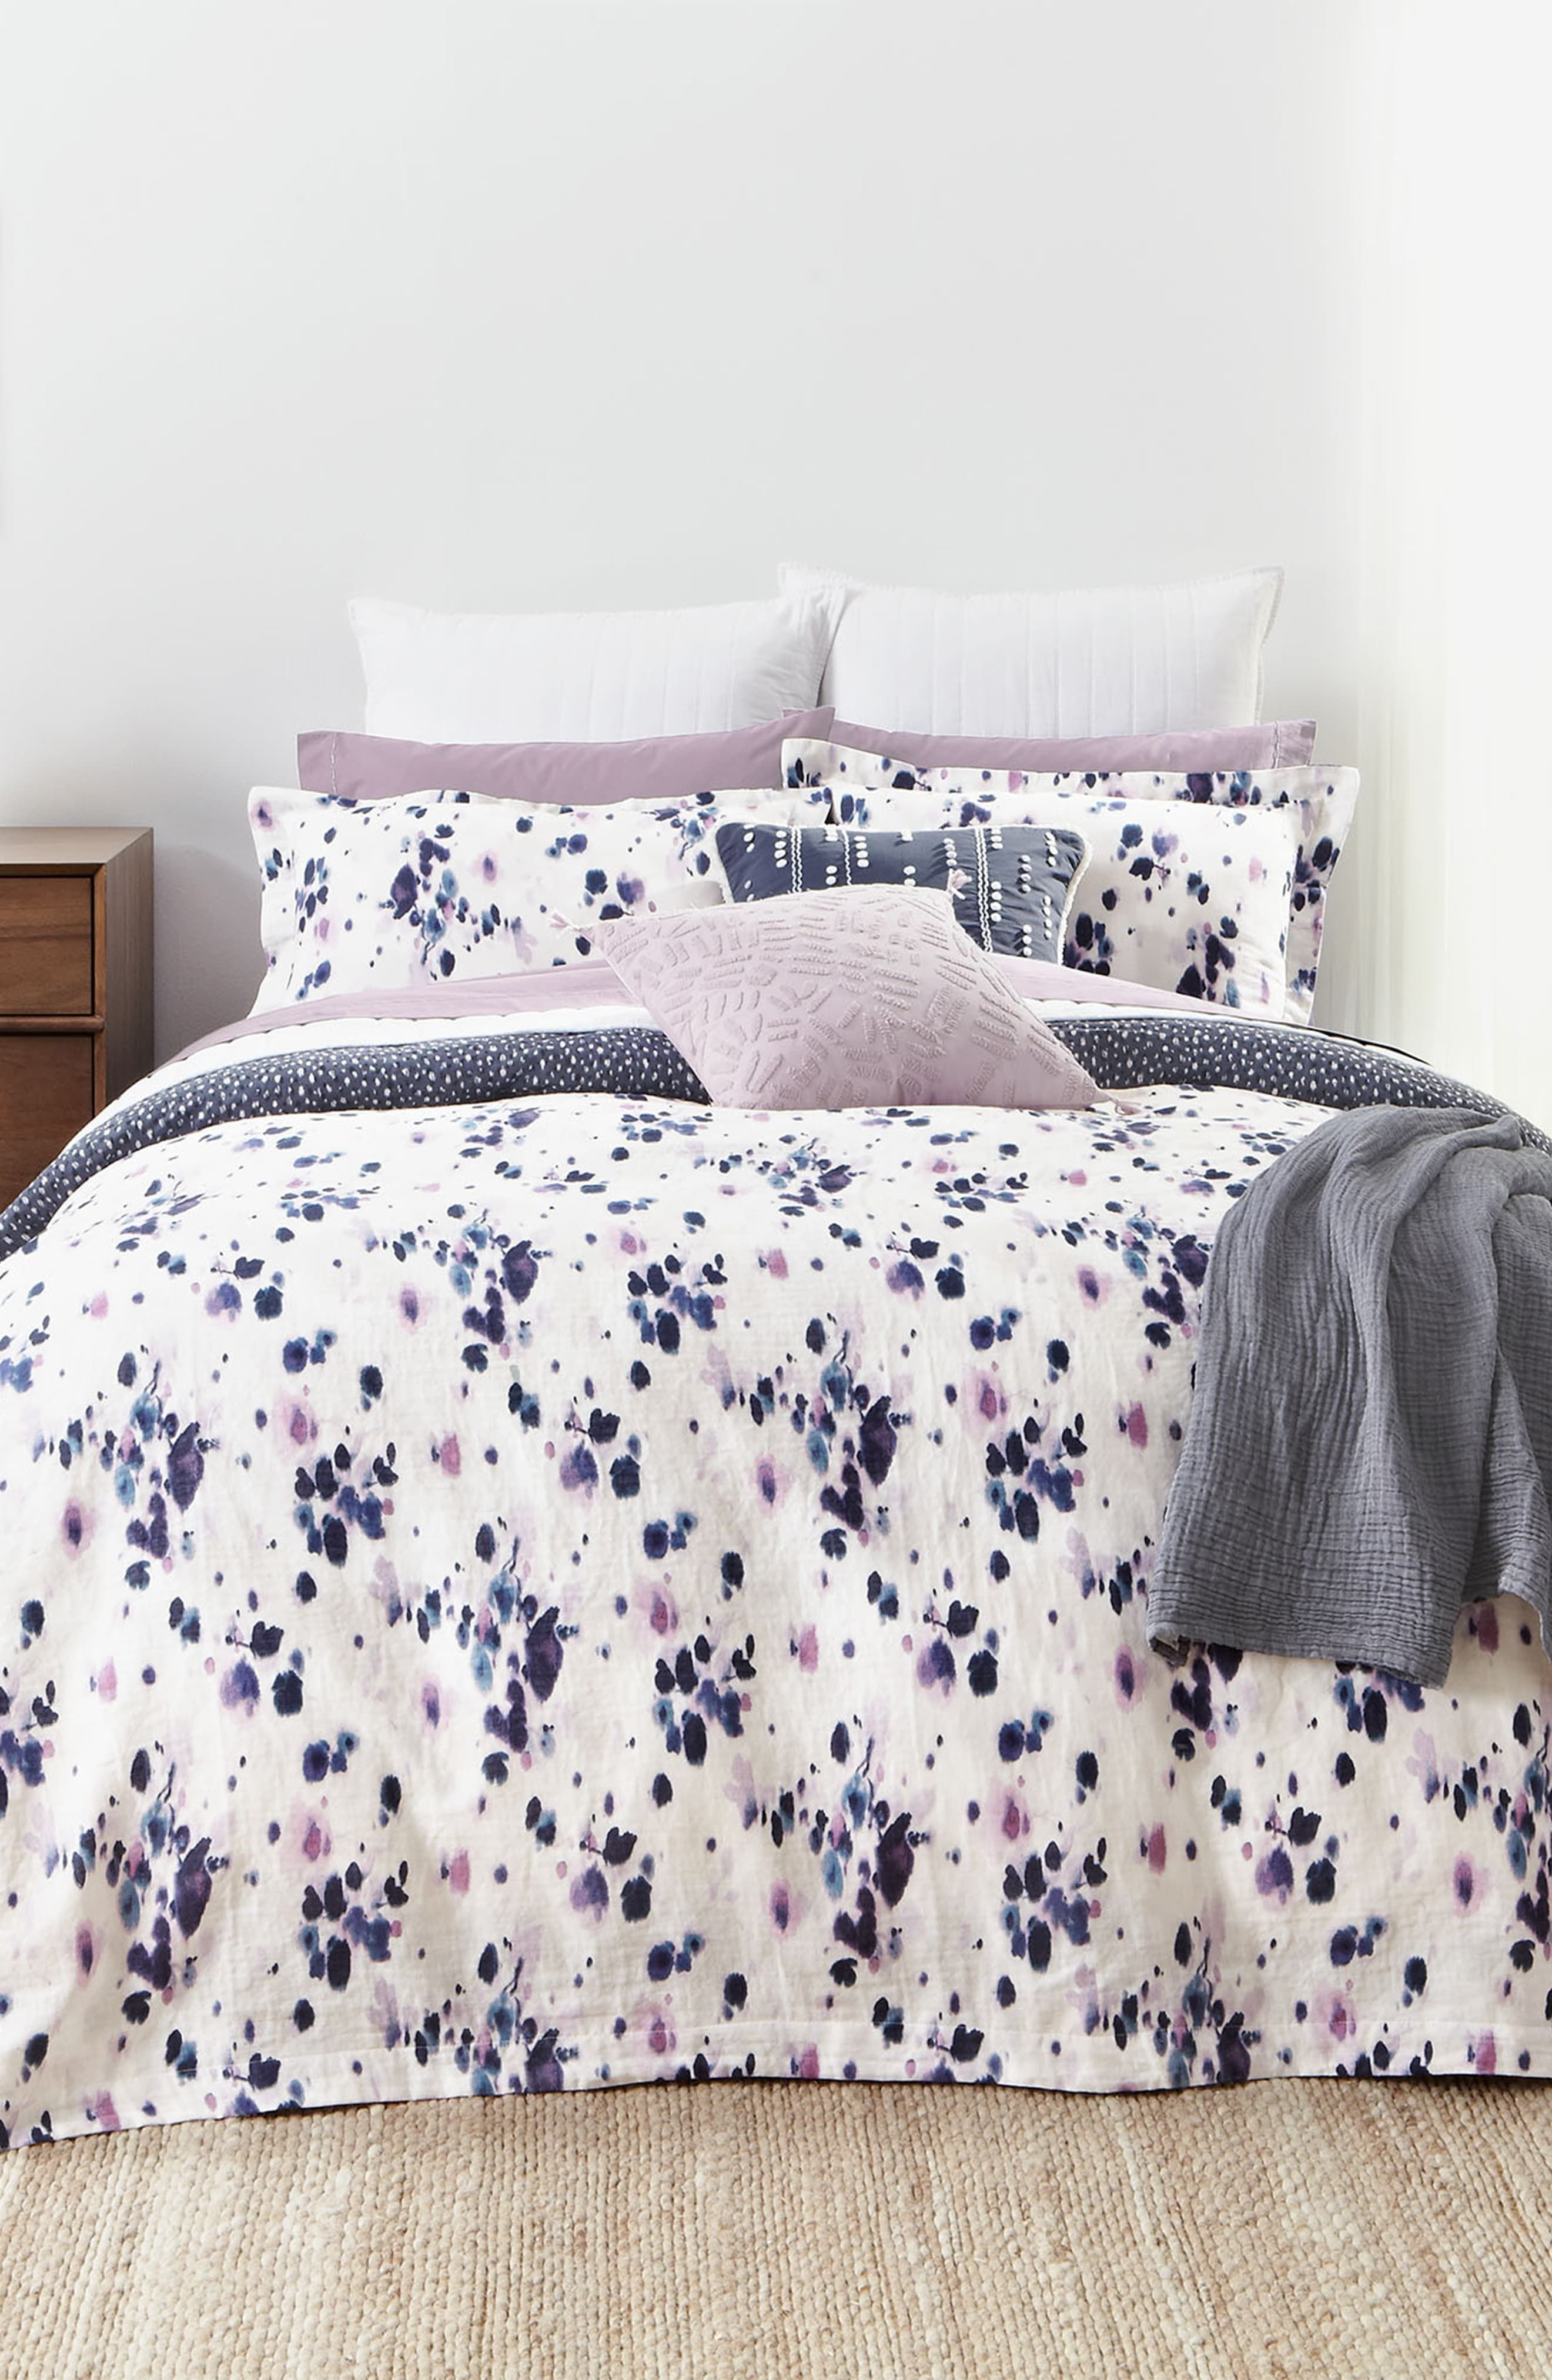 Inexpensive Easter Bedroom Interior Design Ideas That You Need To Know 20